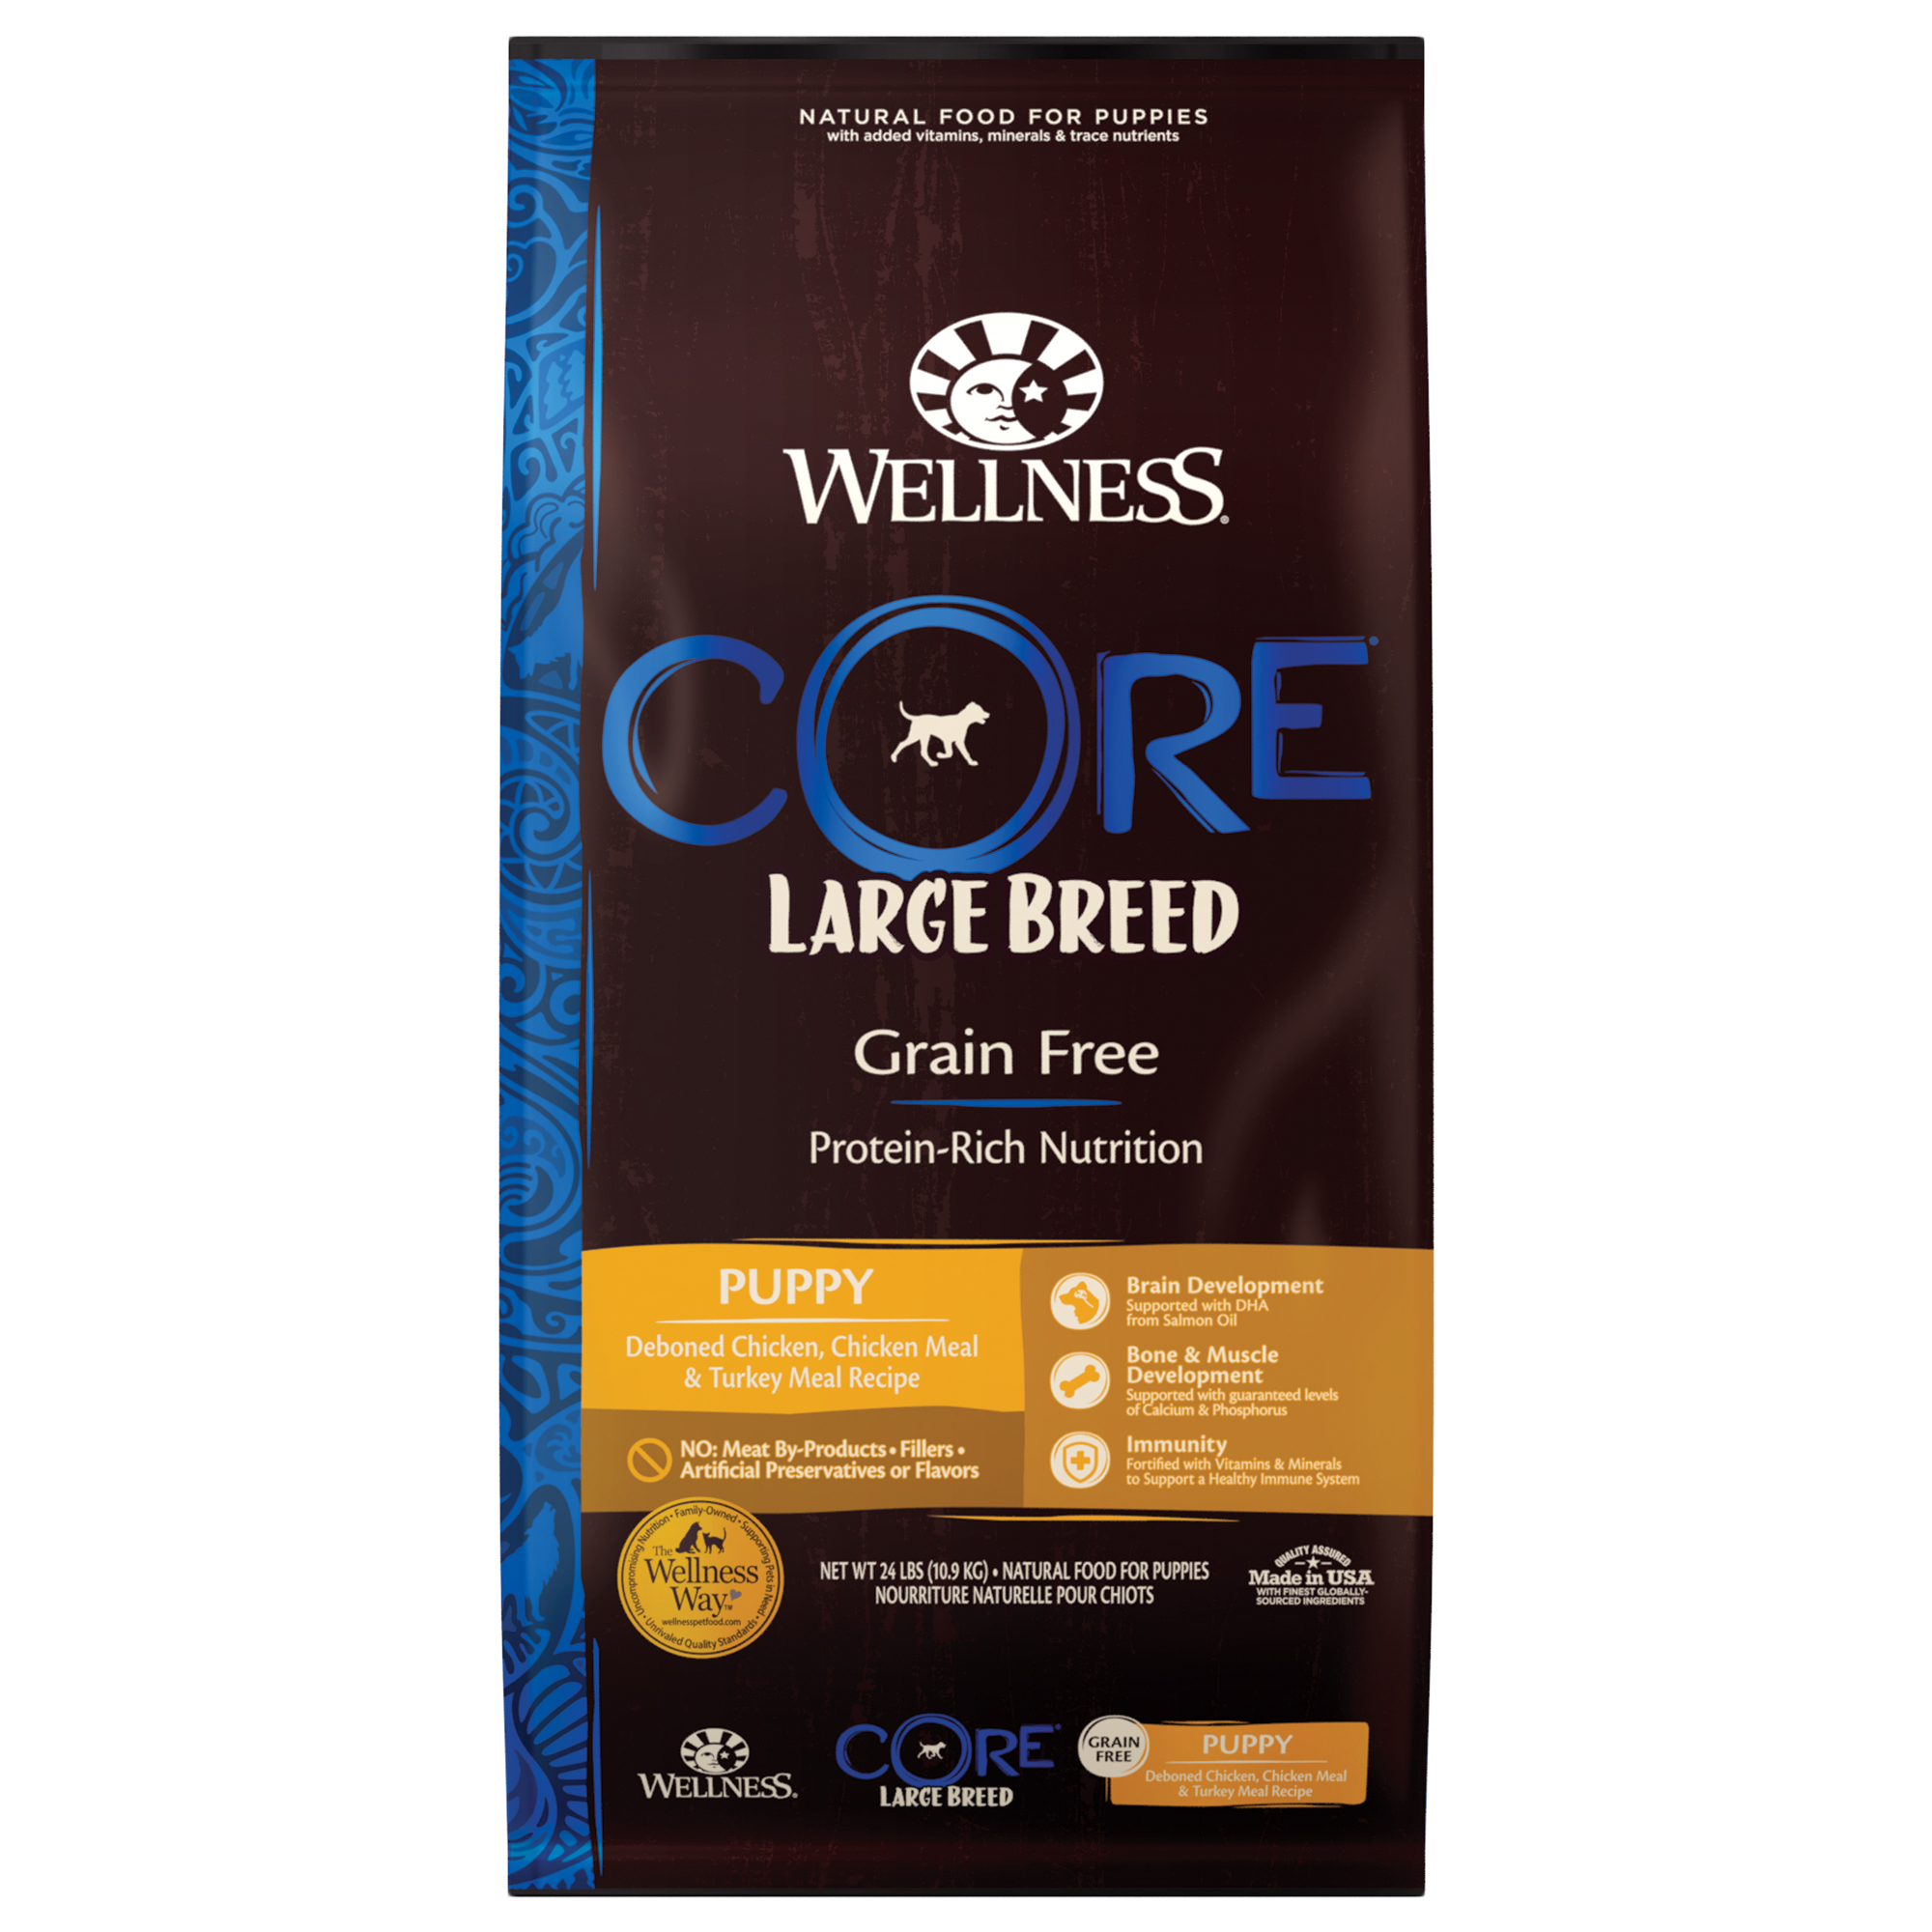 Core 174 Grain Free Large Breed Puppy Formula